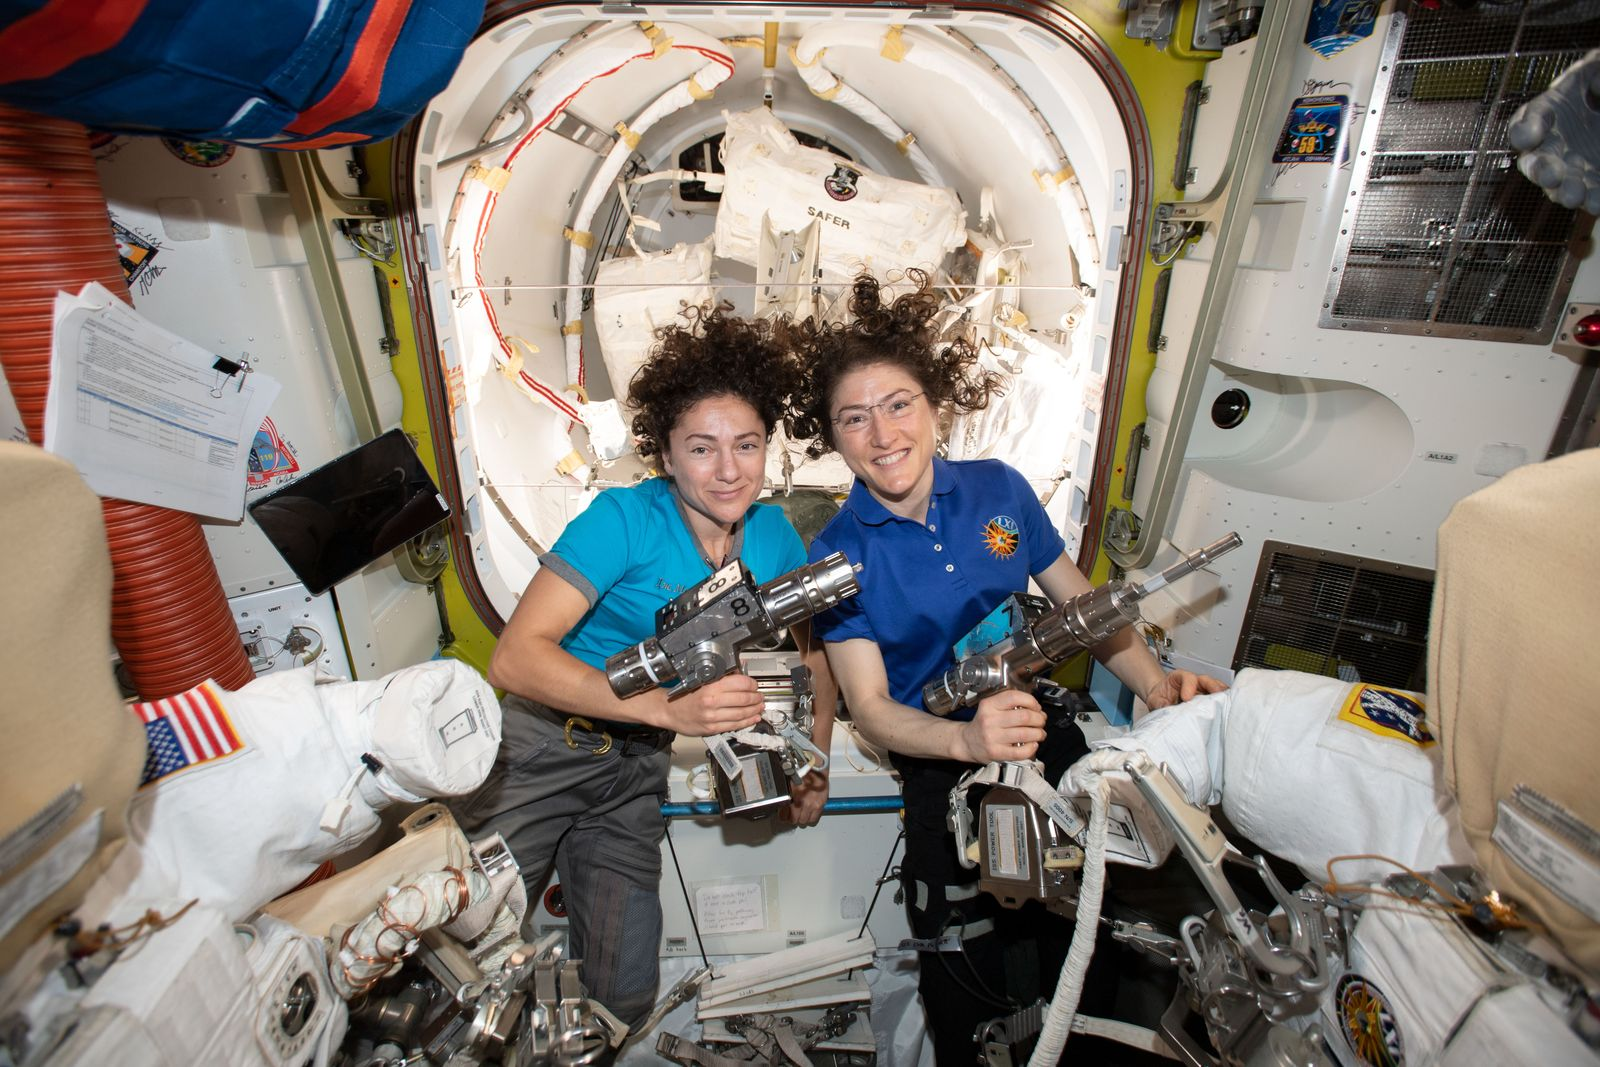 Upcoming first all-female spacewalking duo Jessica Meir and Christina Koch, Space - 15 Oct 2019